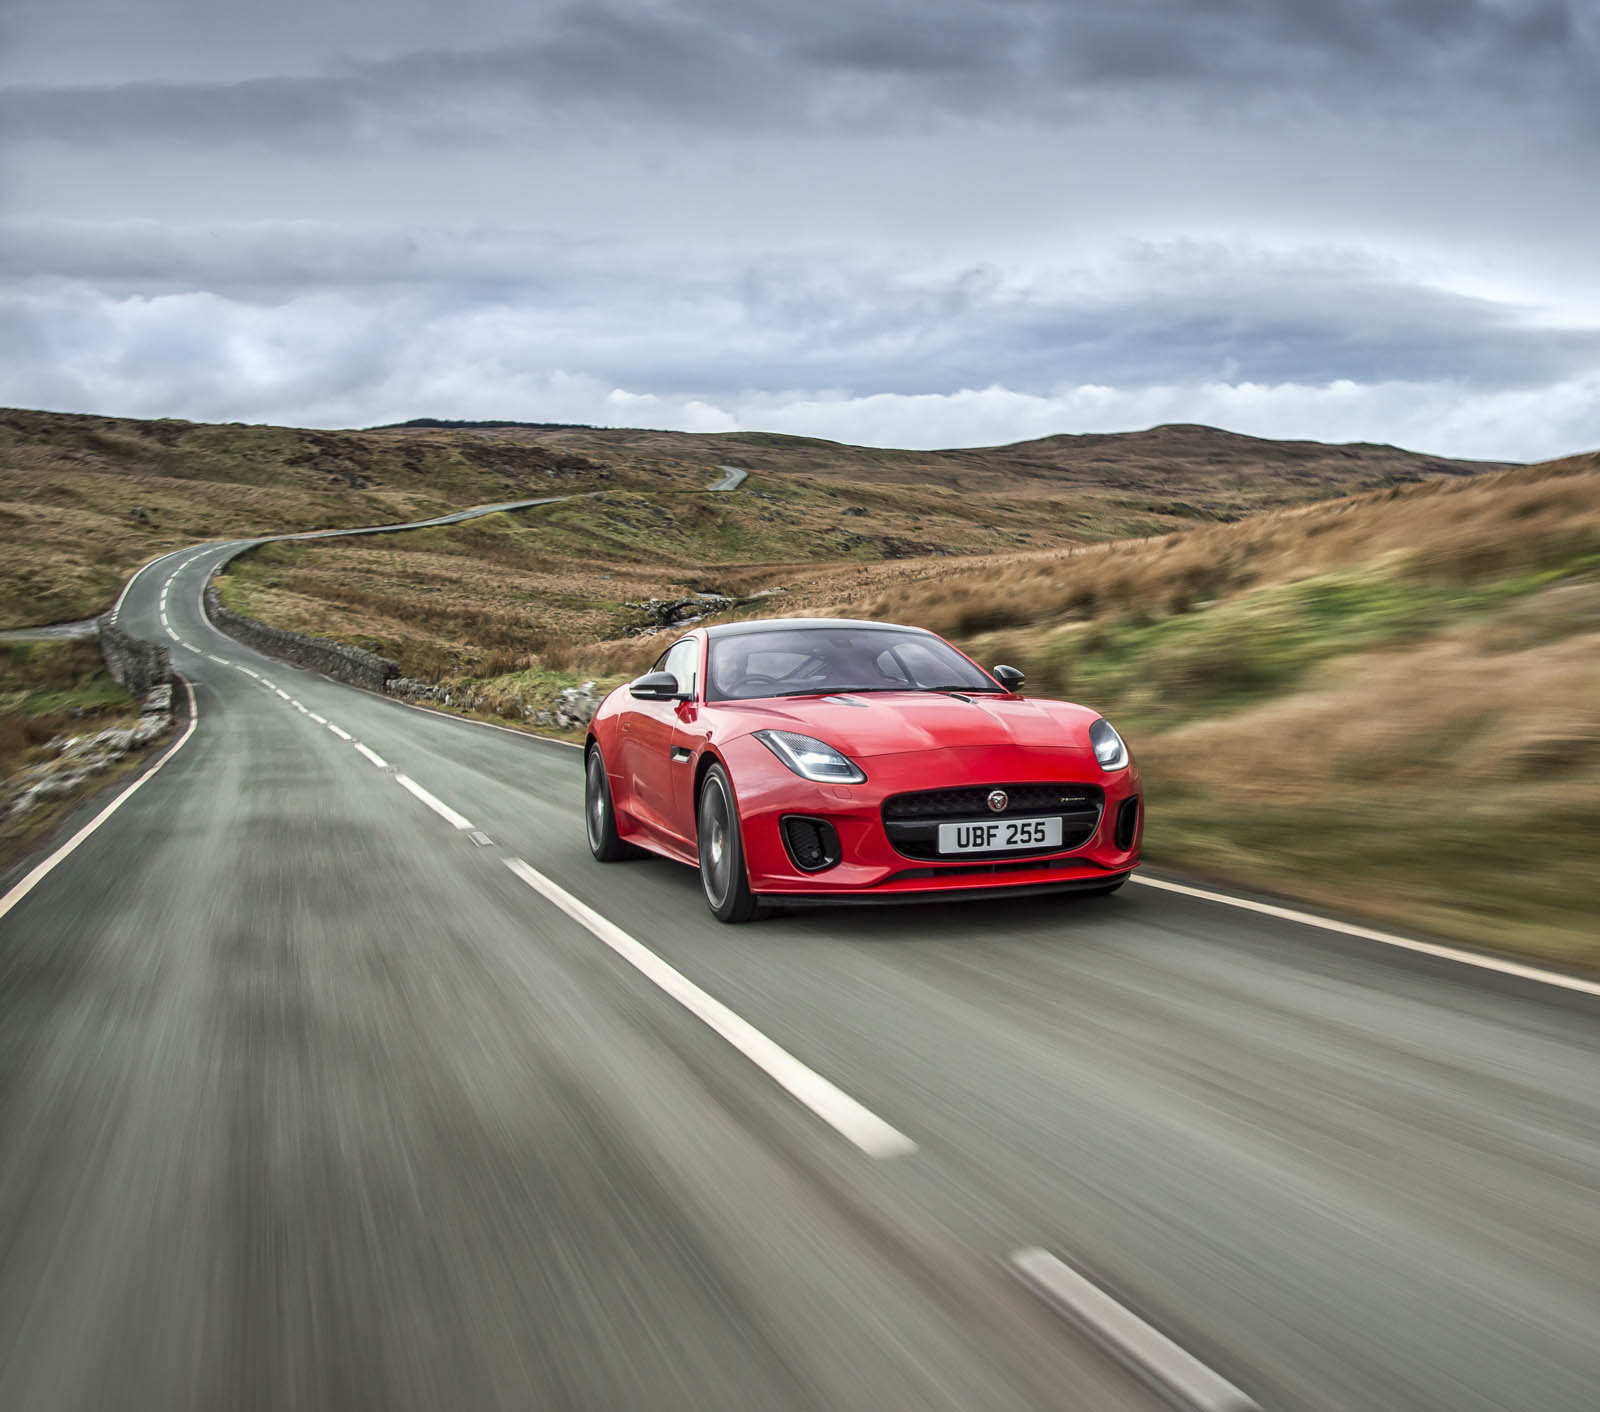 2017 Jaguar F-Type 2.0